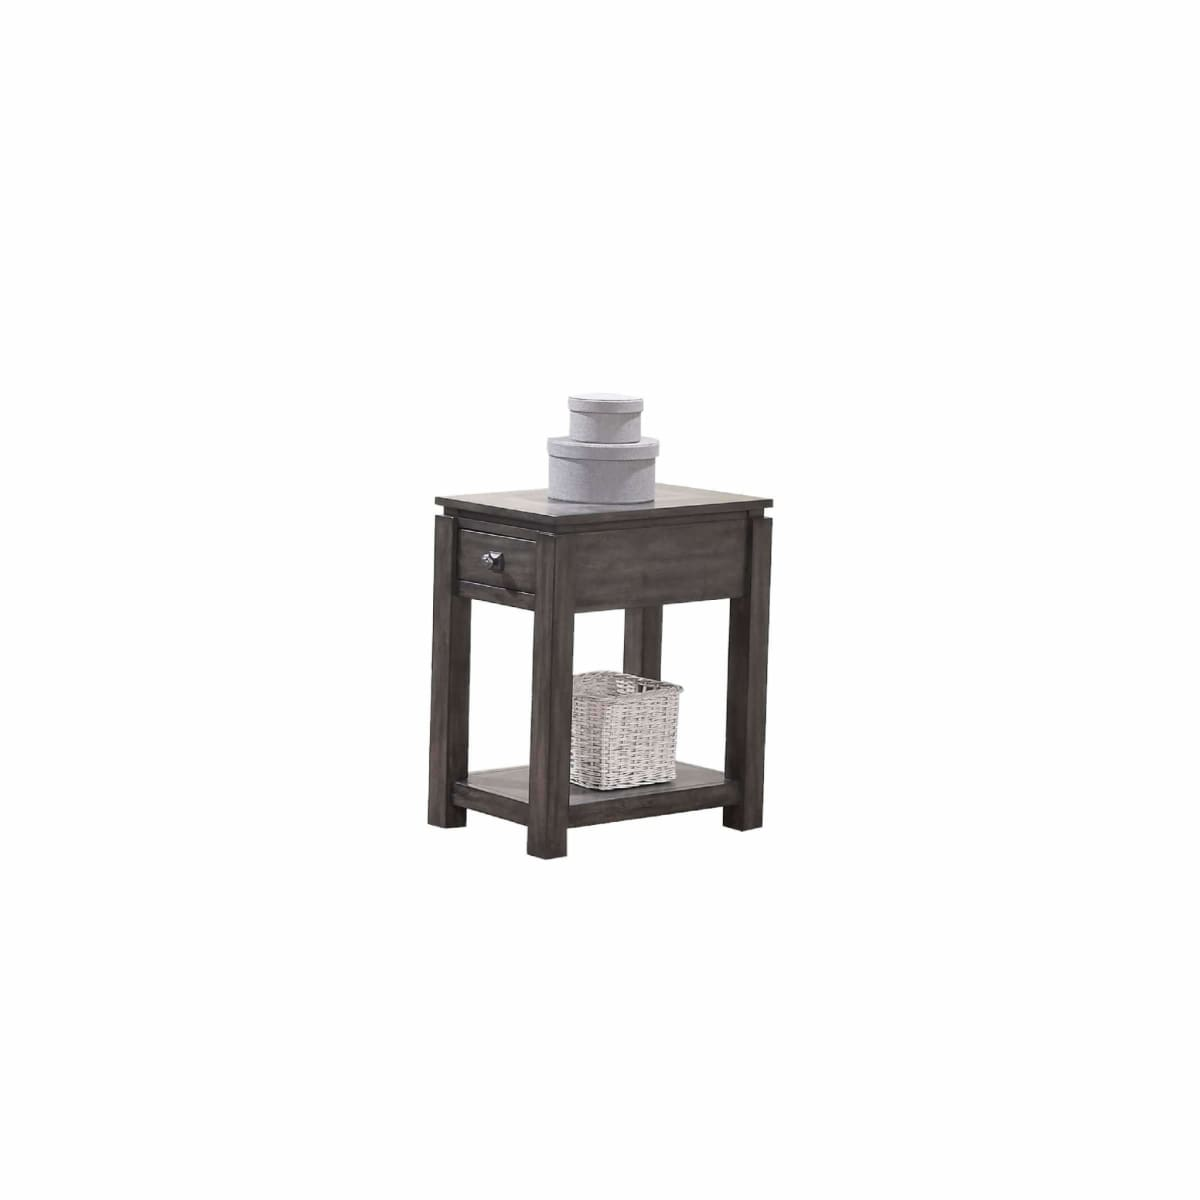 Lancaster 14 Lamp Table - END TABLE/SIDE TABLE